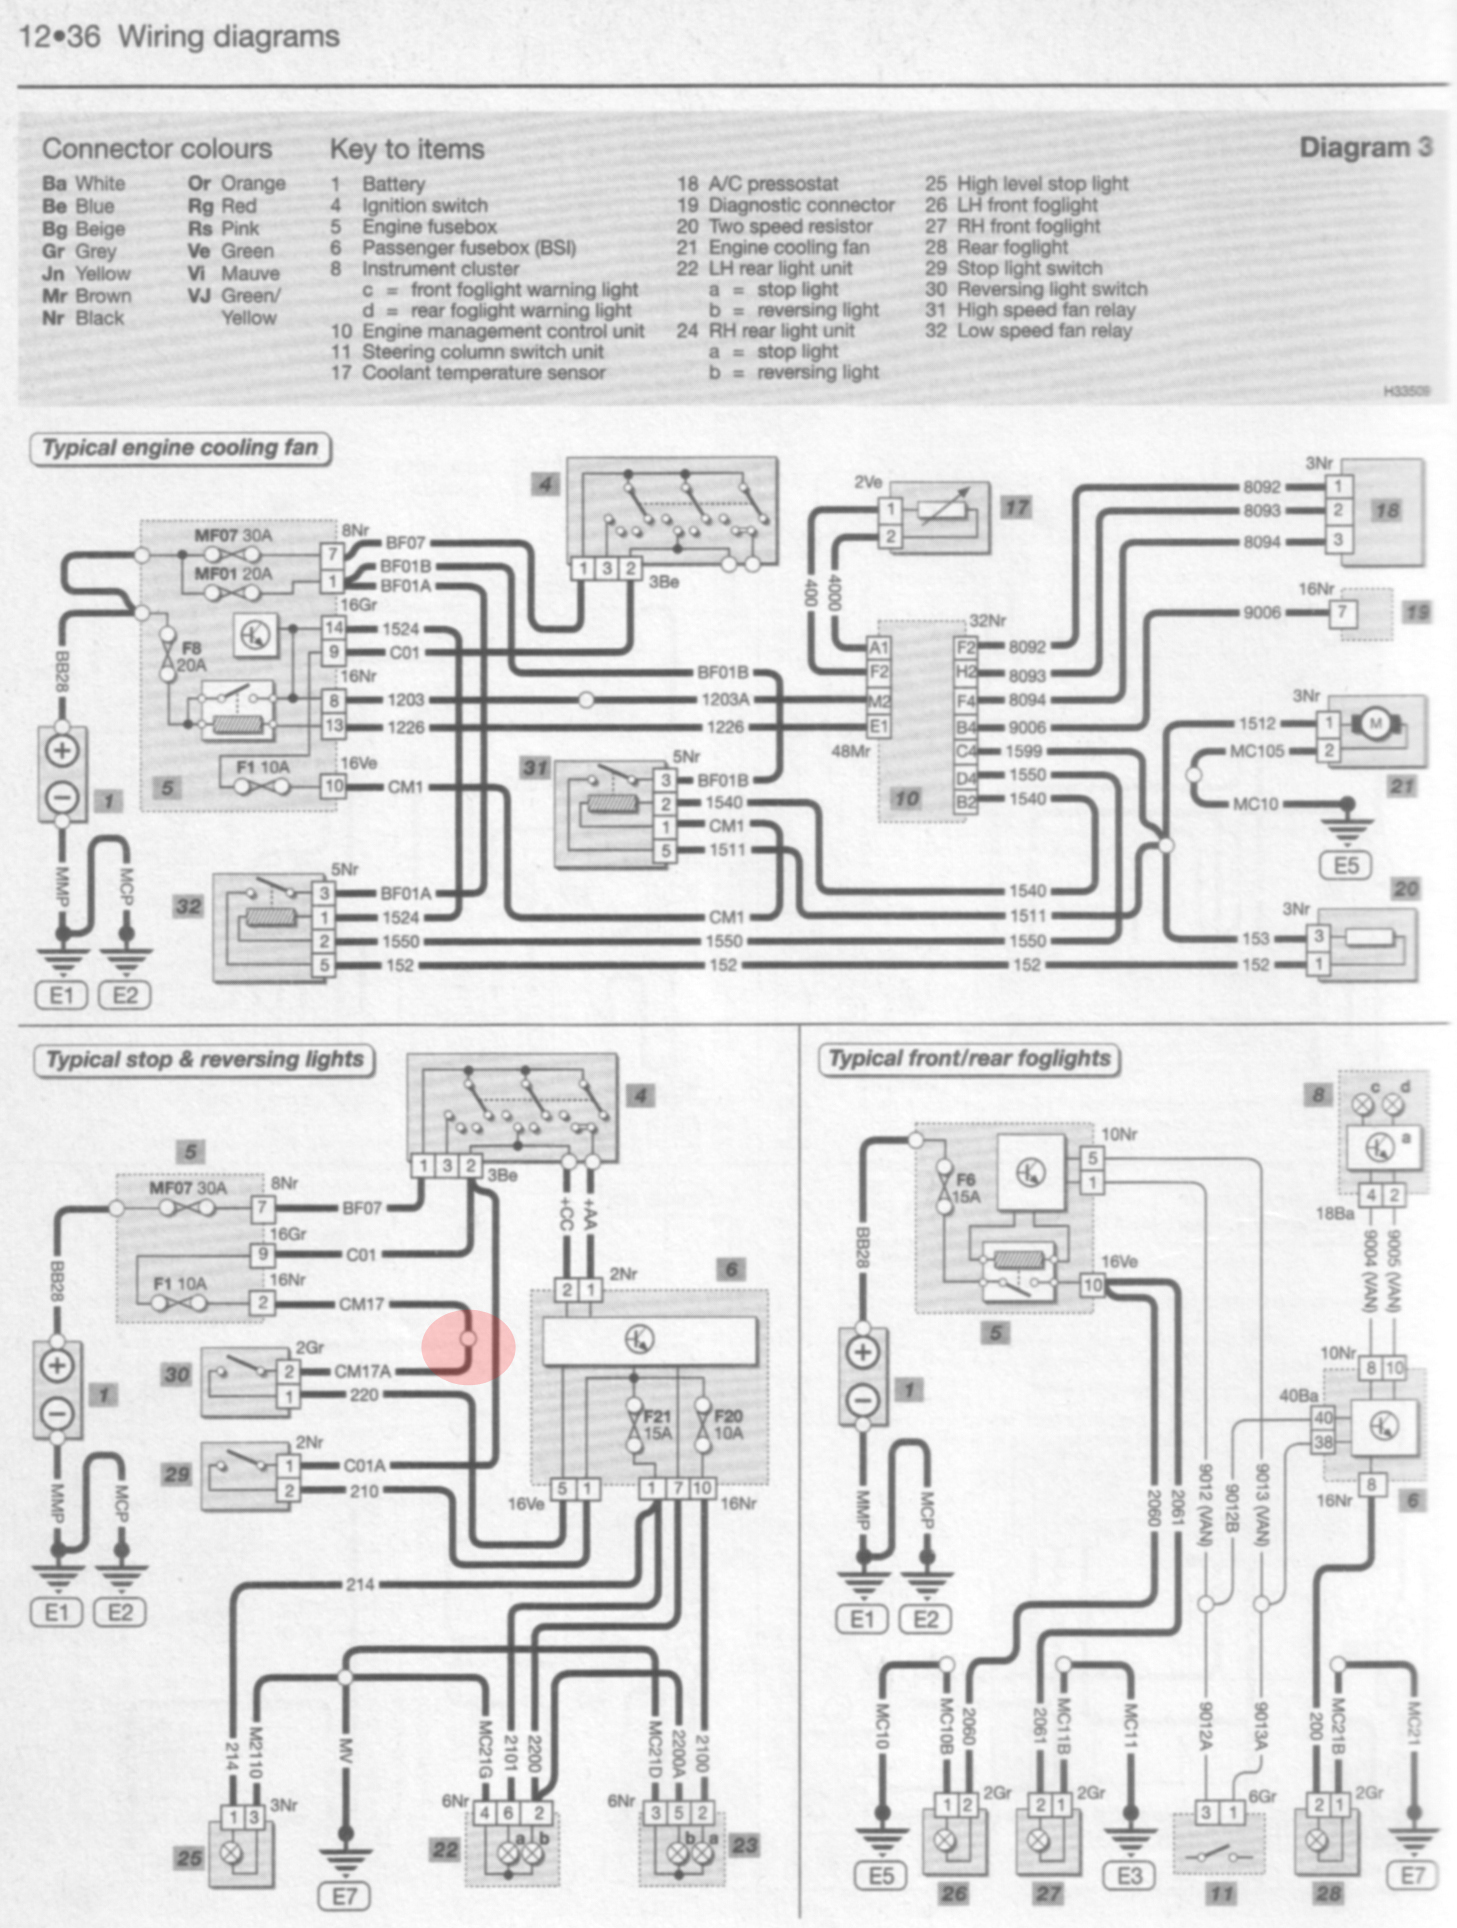 peugeot 206 wiring diagram er for social networking site gti reverse lights not working